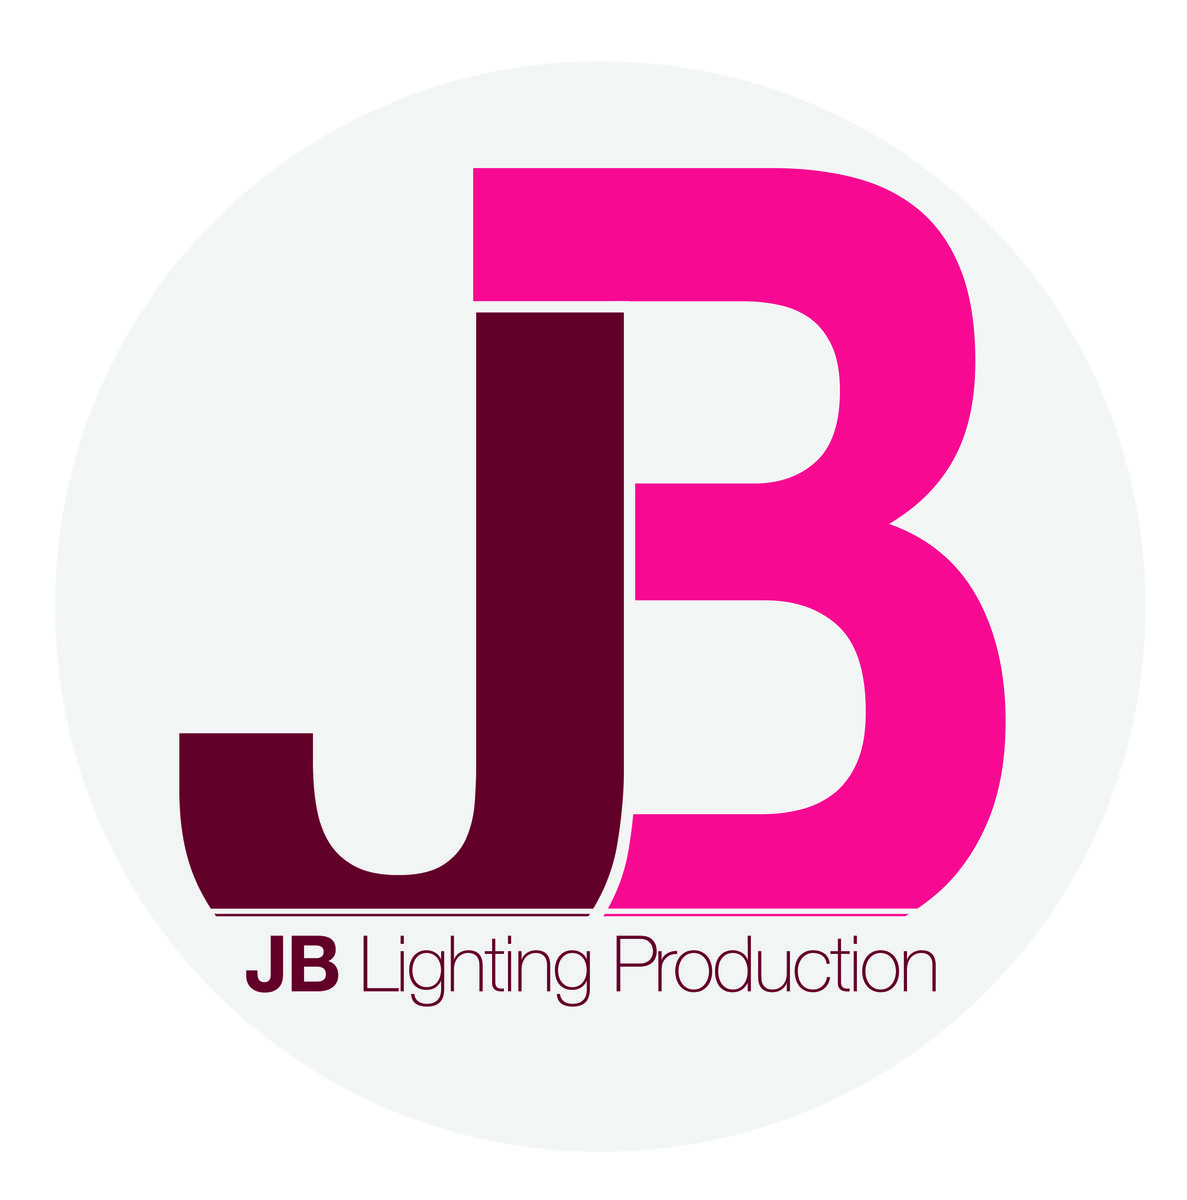 Jb Lighting Service Jb Lighting Production Llc Reviews Hawthorne Nj 27